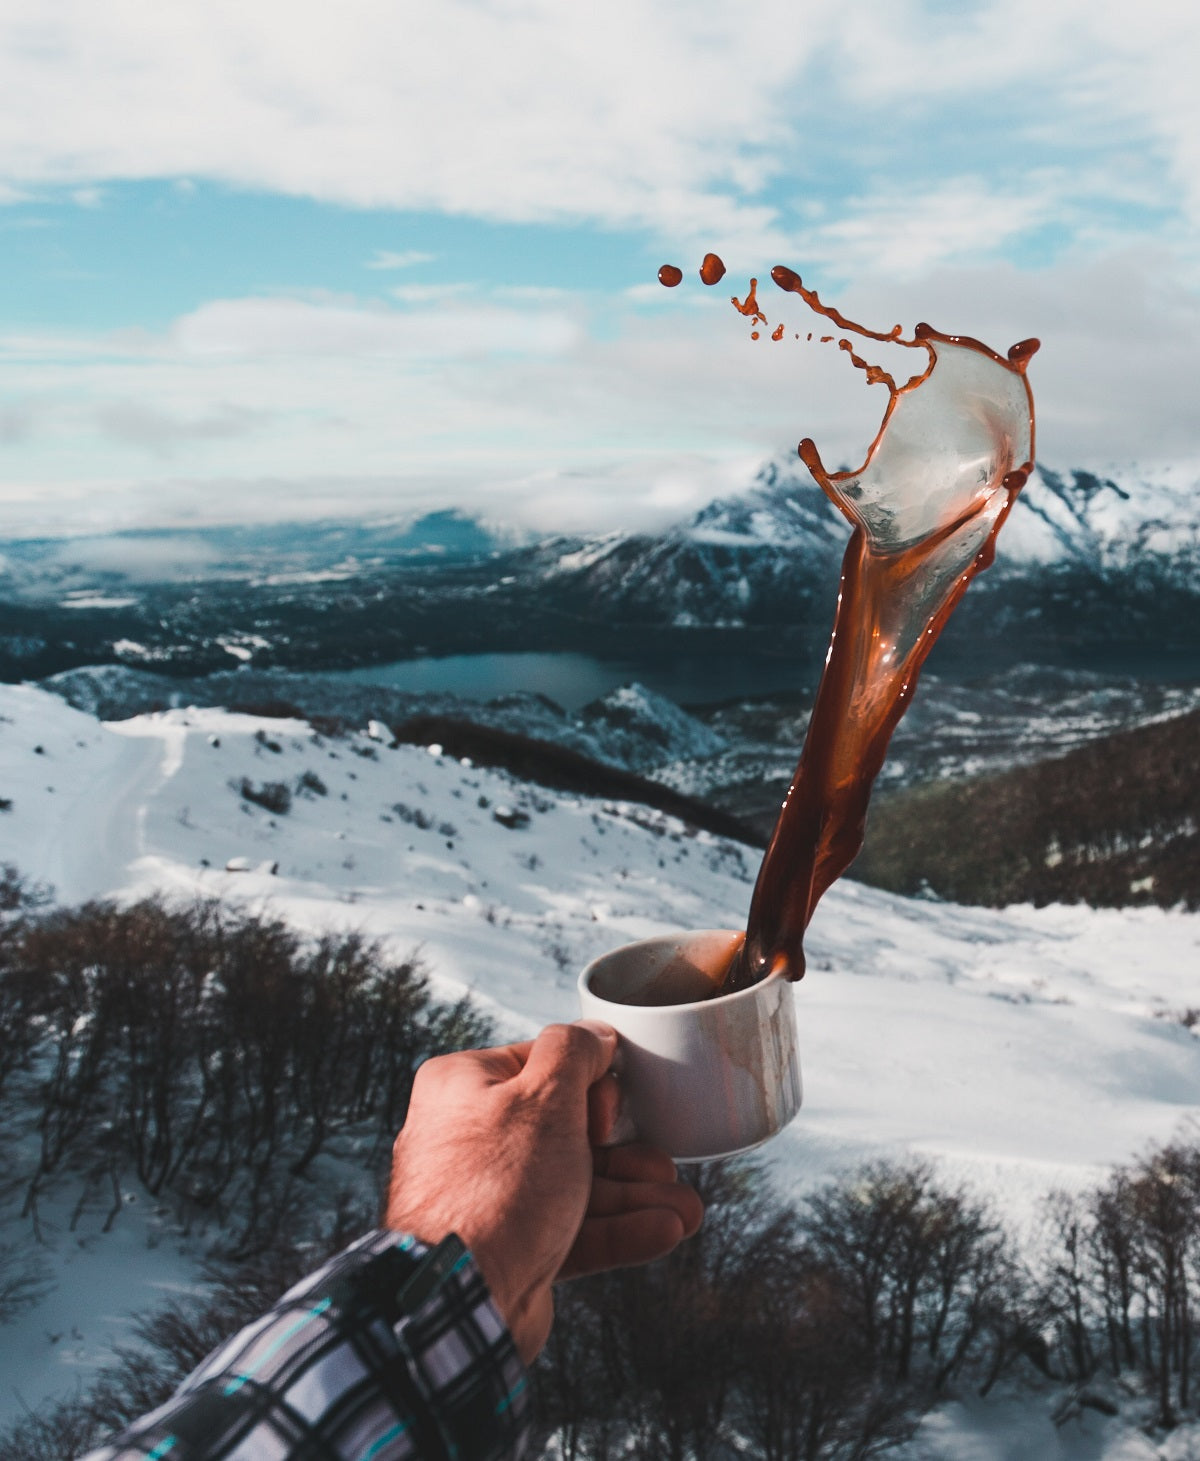 image tossing coffee with mountains in background